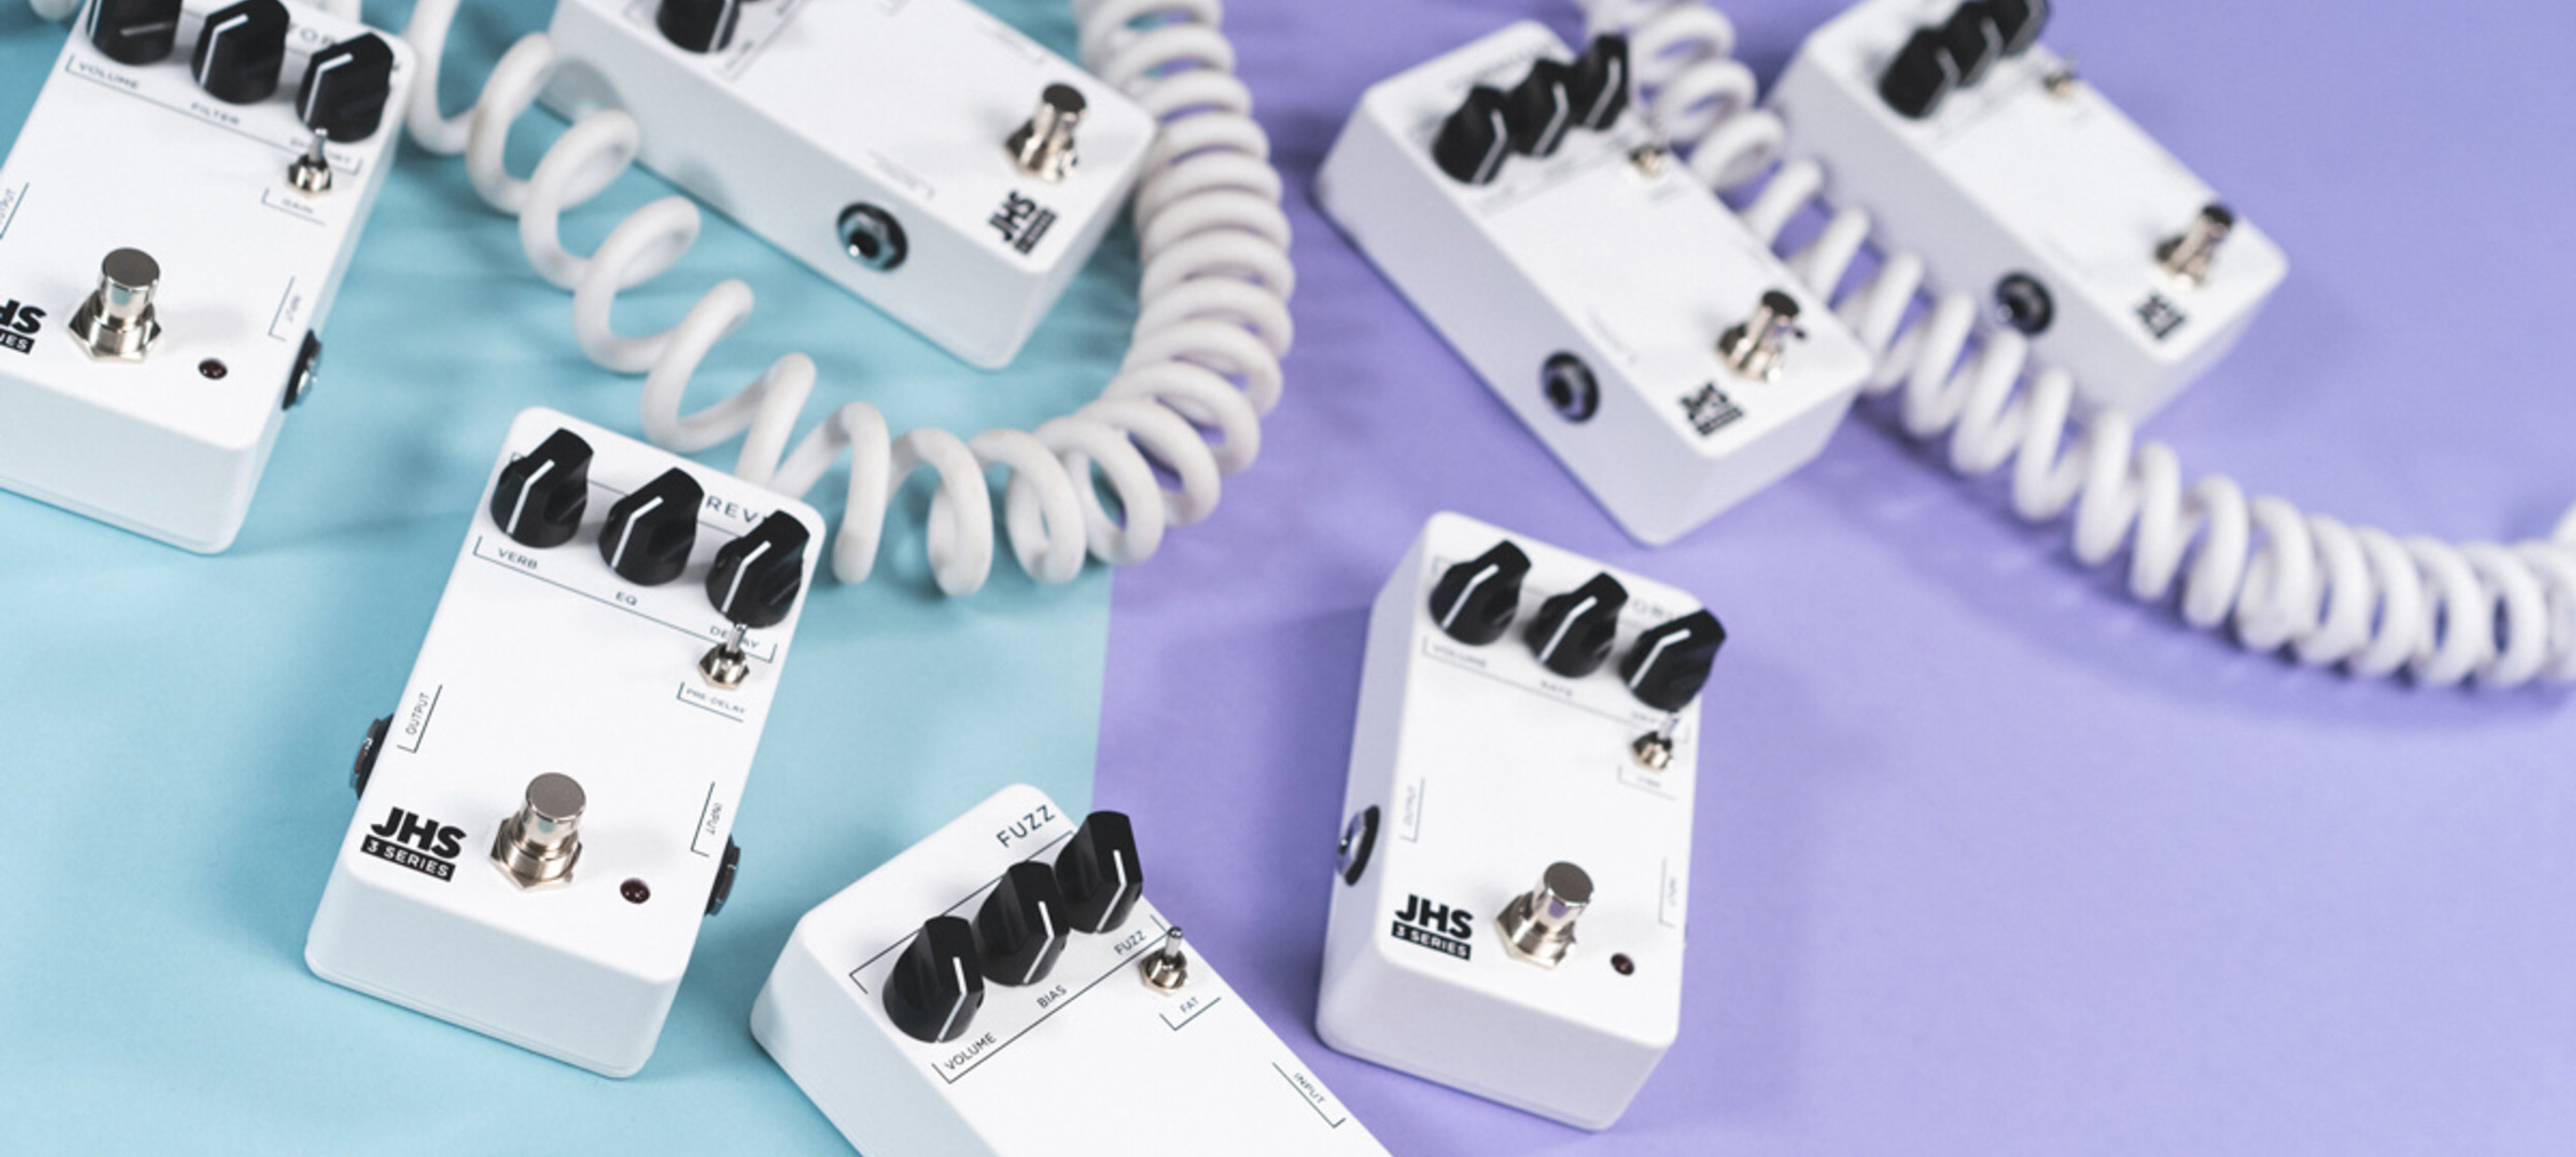 JHS 3  Series Effect Pedals: Just the good stuff.